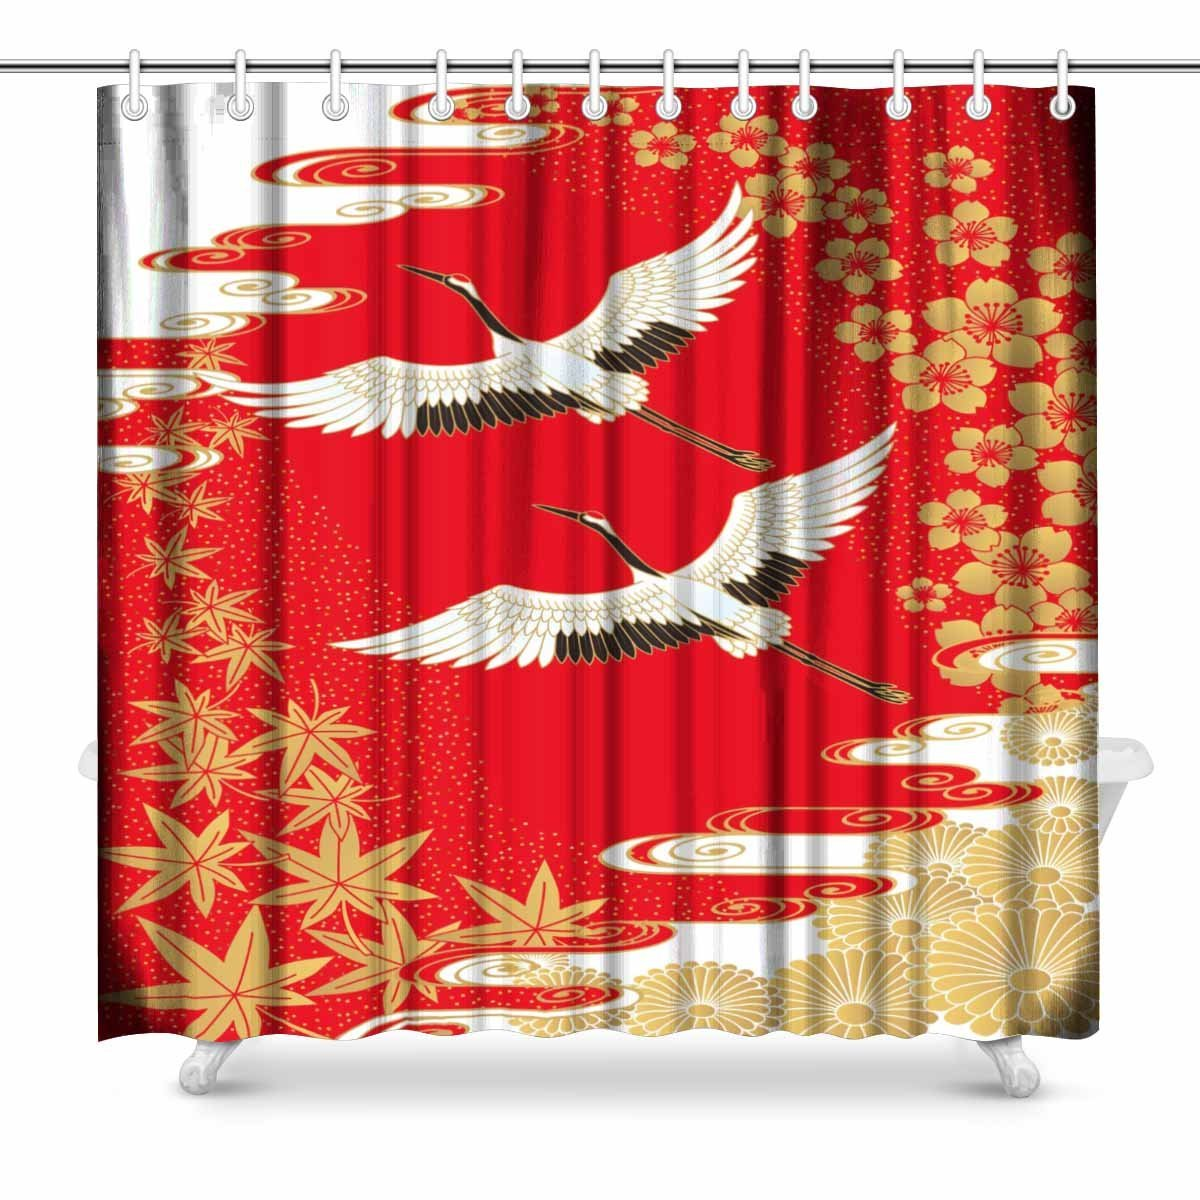 Aplysia Cranes And Cherry Maple Japanese Style Art Bathroom Decor Shower Curtain With Hooks 72 X Inches In Curtains From Home Garden On